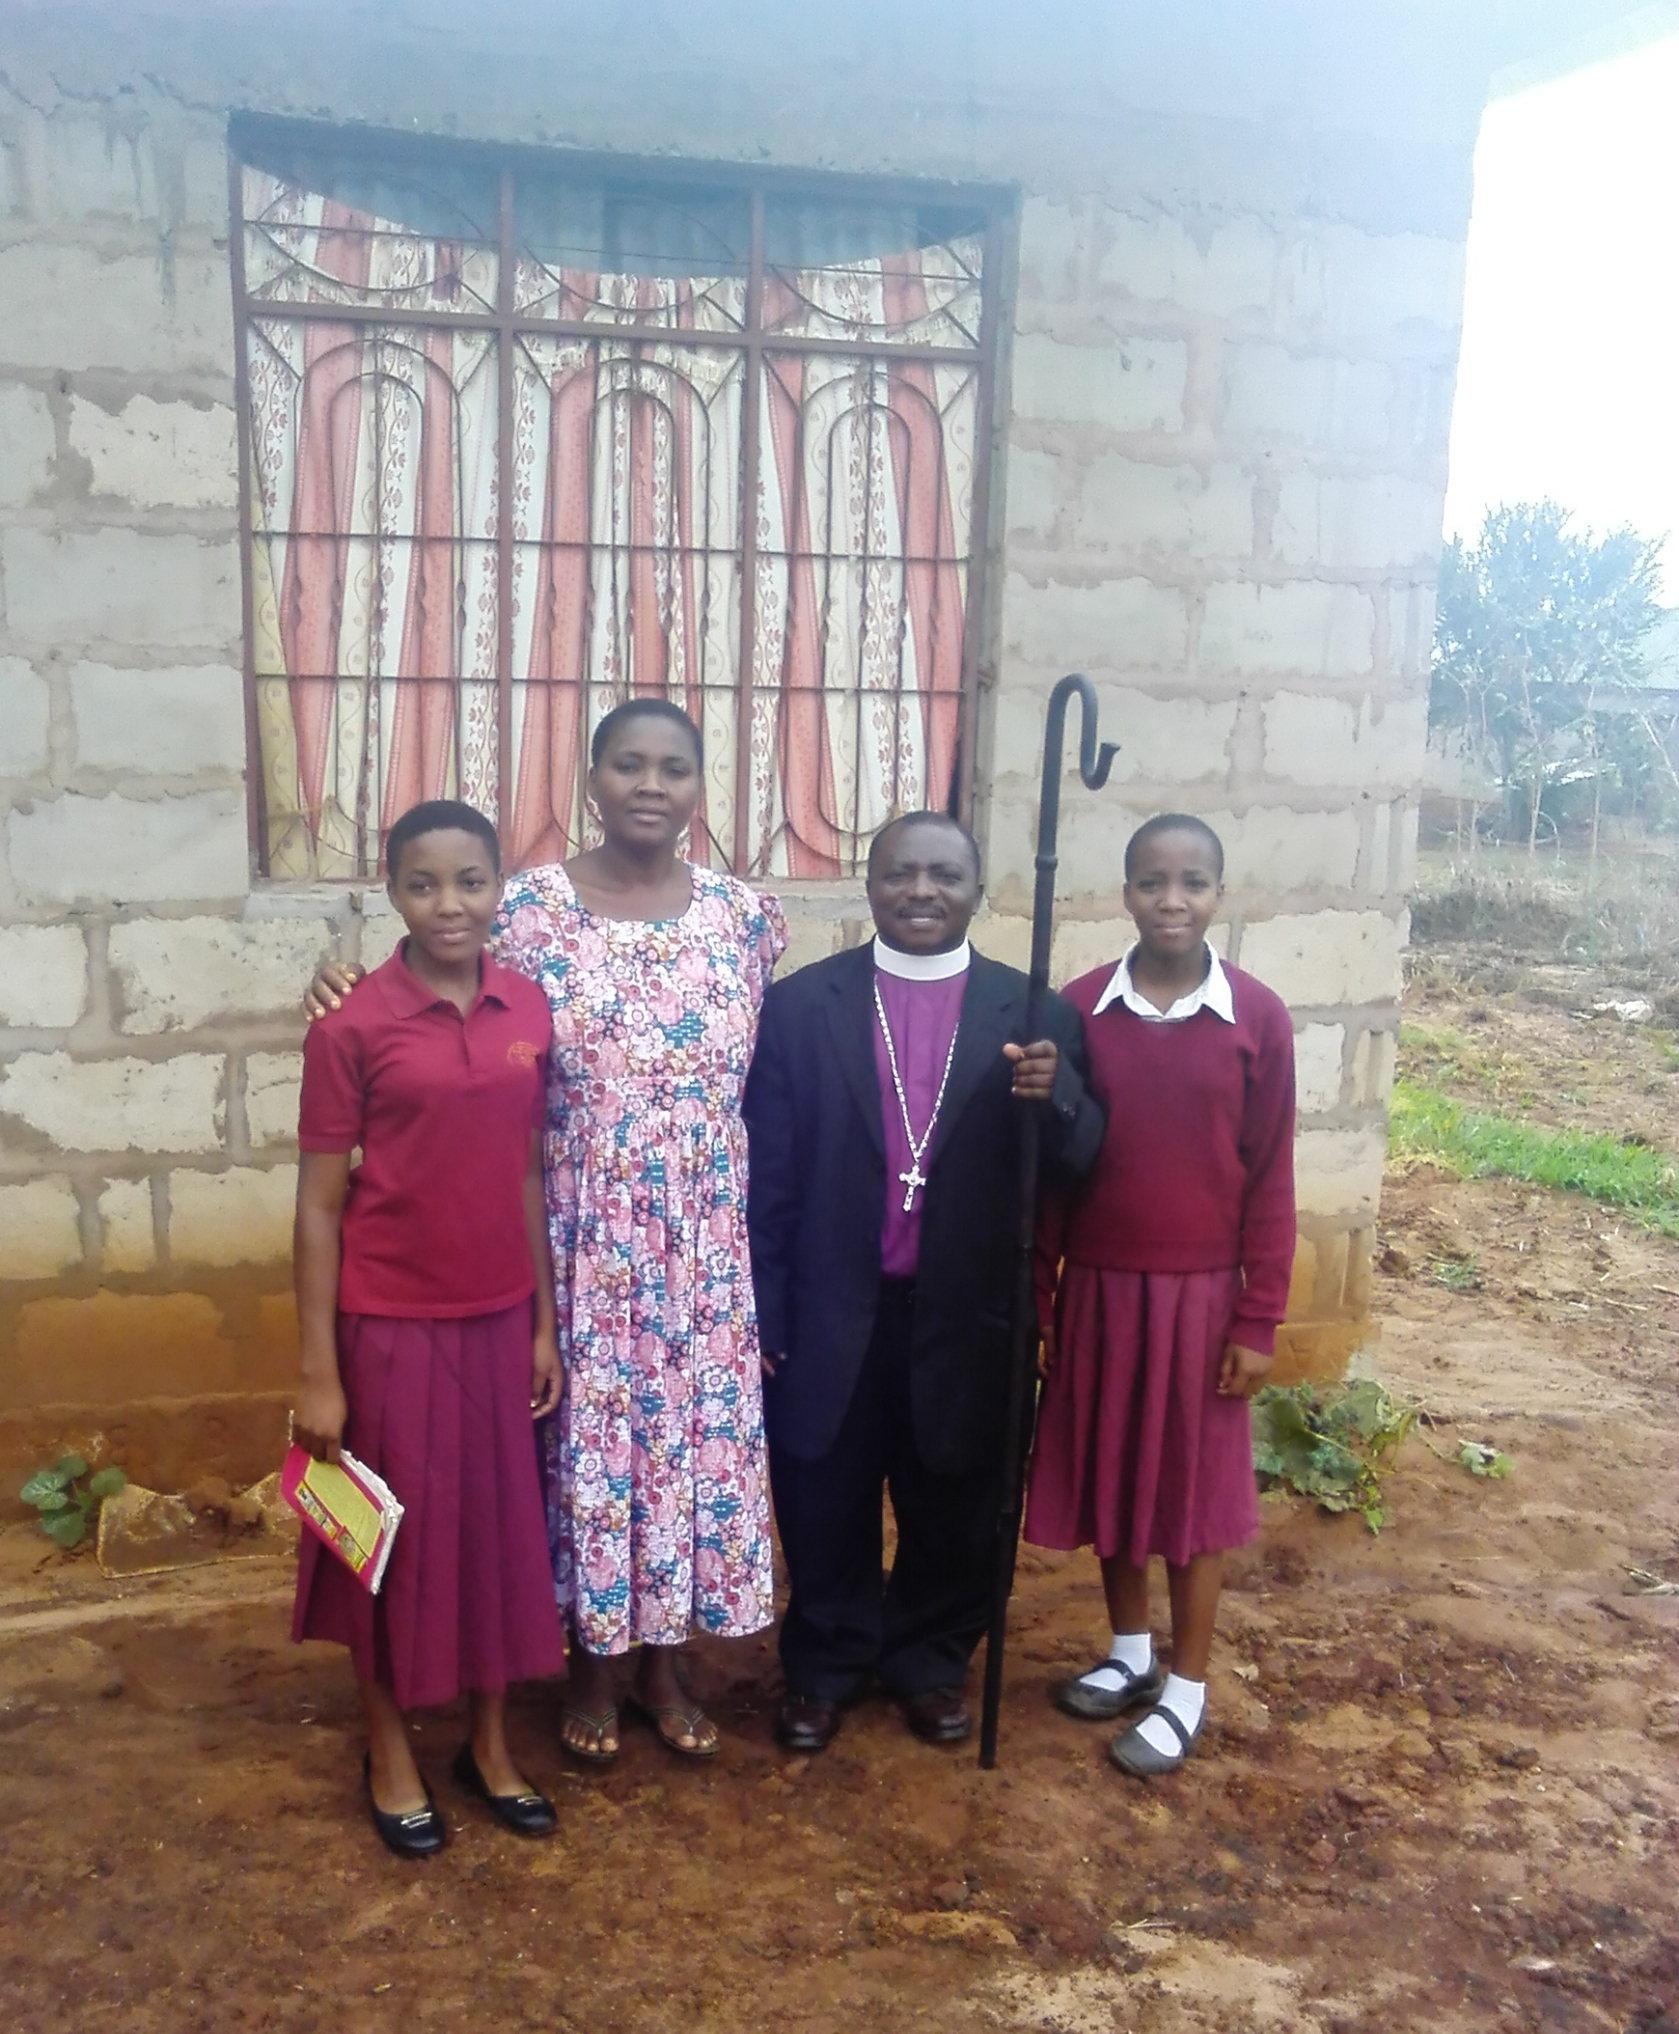 Sarah, right, with her father Bishop Frederick Chingwaba, mother Alice and sister Anna outside the family home in Morogoro in 2018.